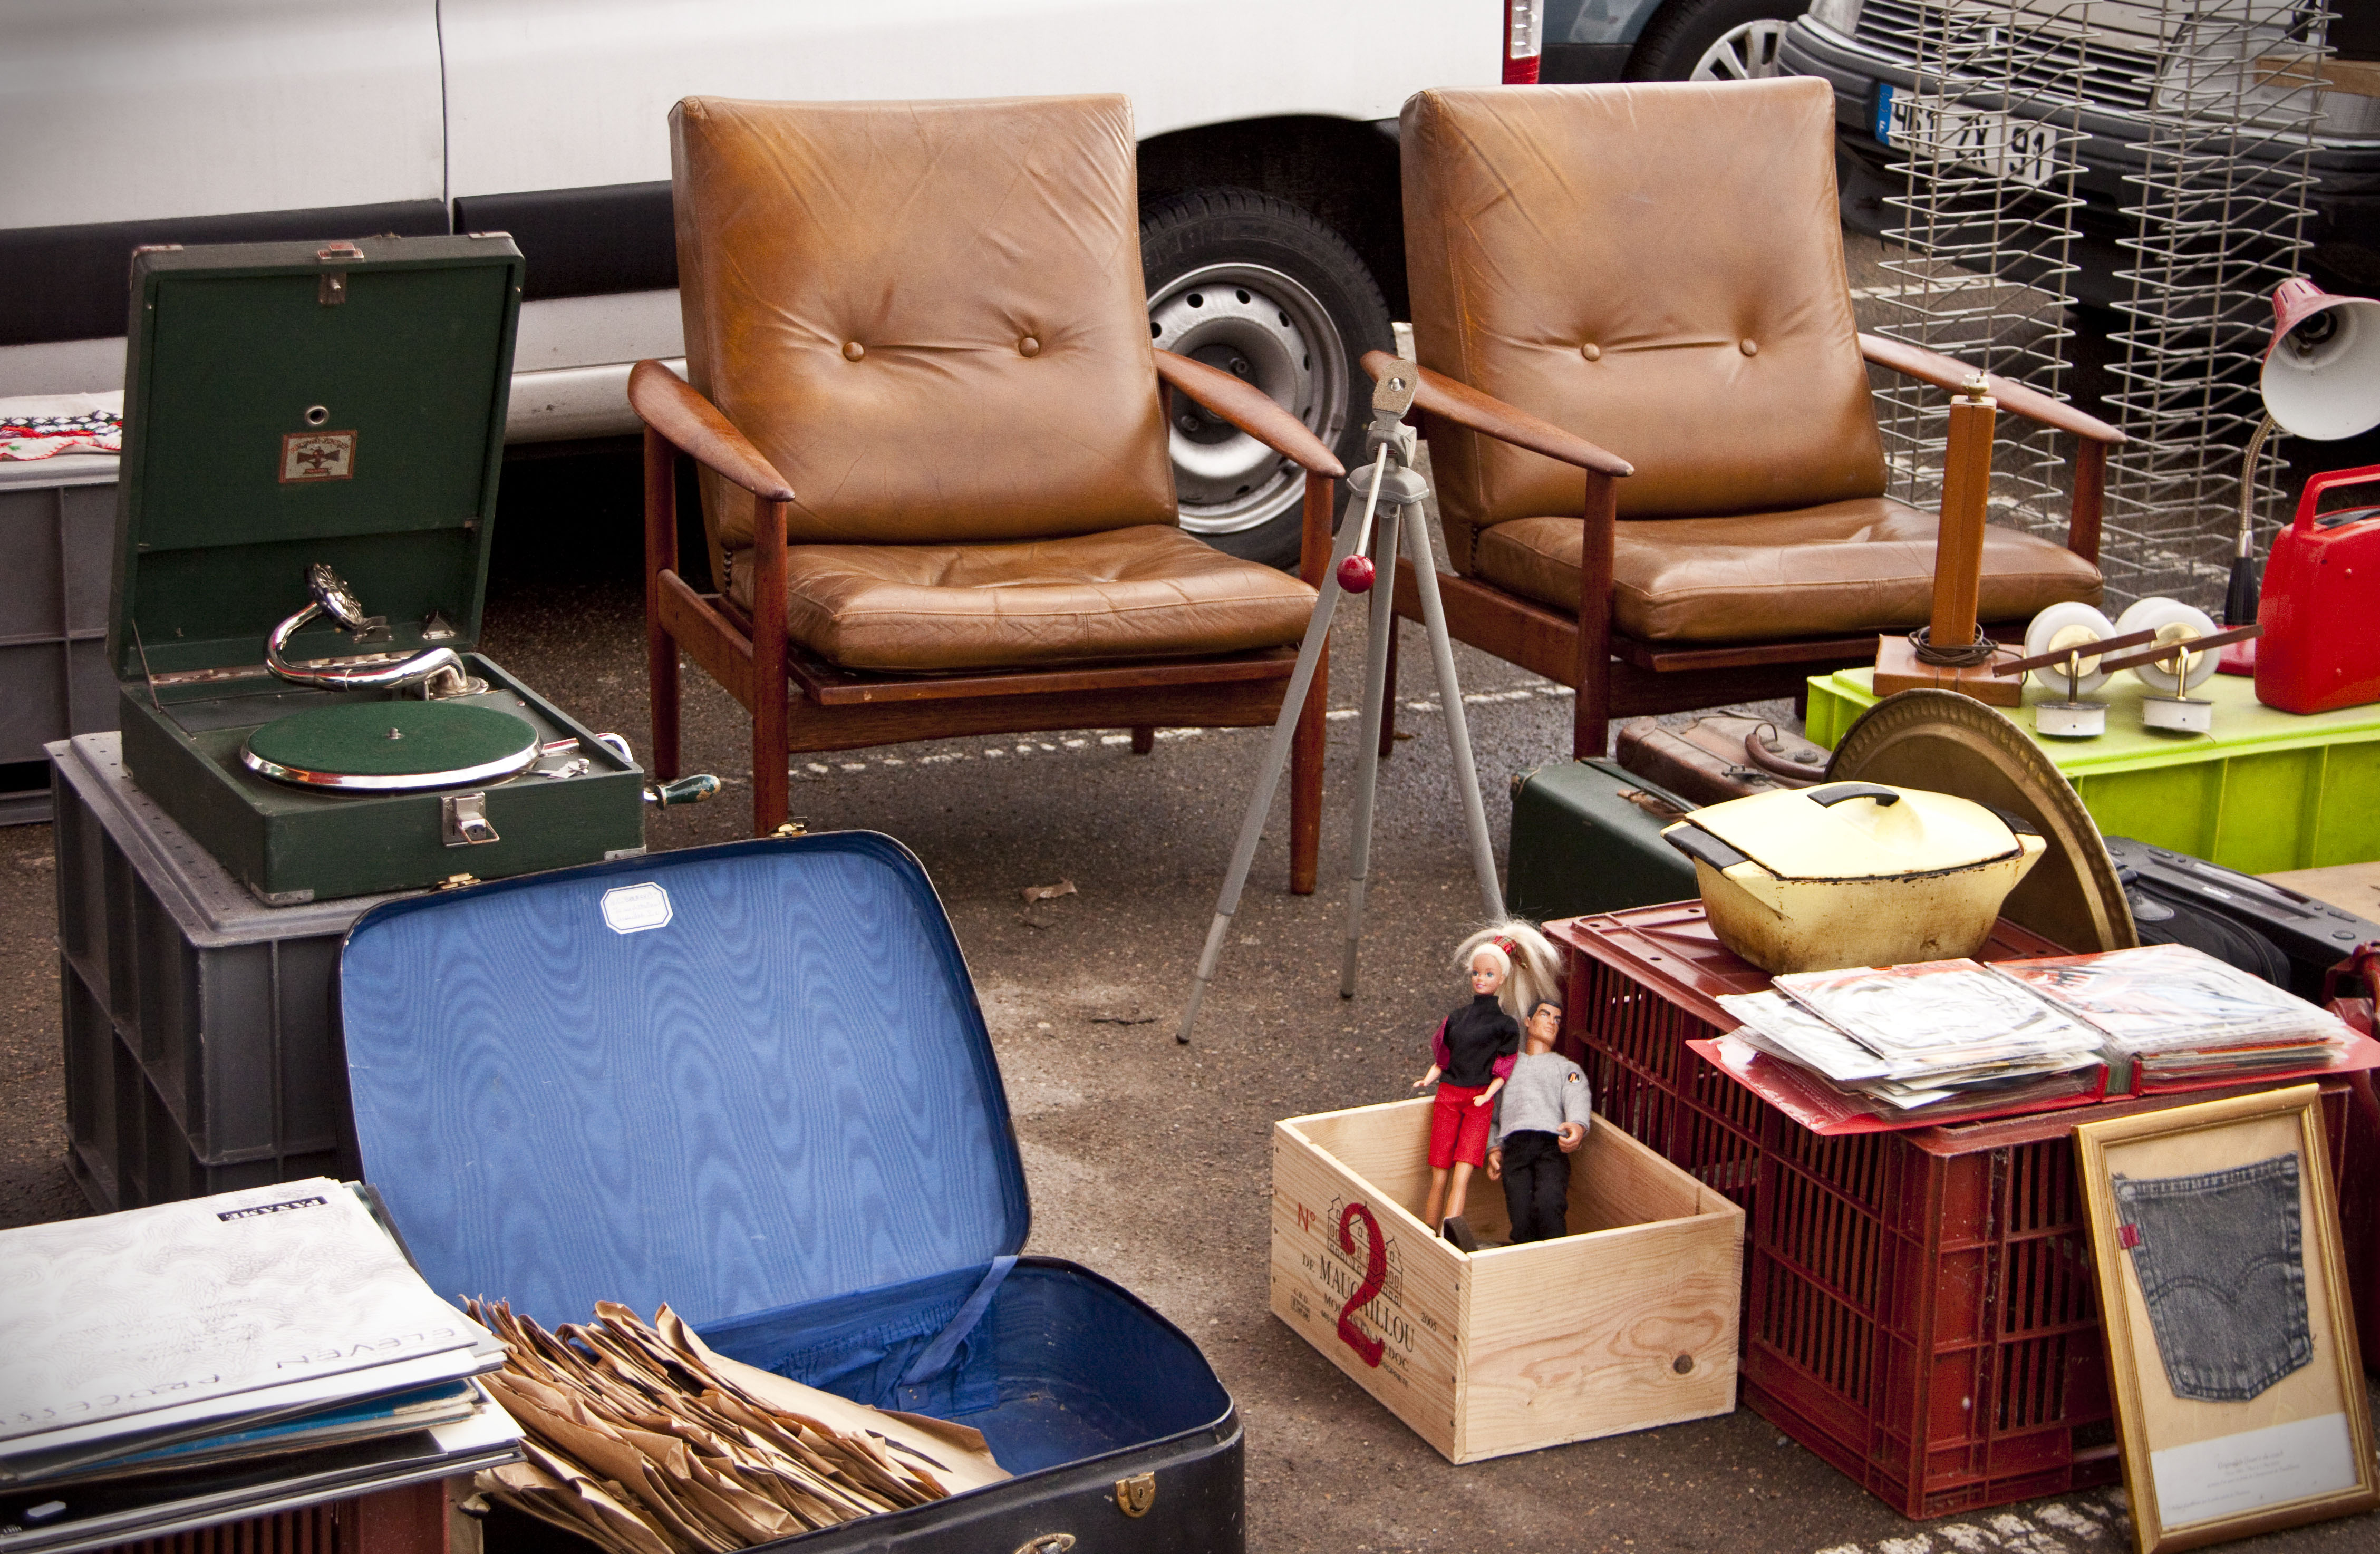 vide grenier paris 29 mai 2011. Black Bedroom Furniture Sets. Home Design Ideas